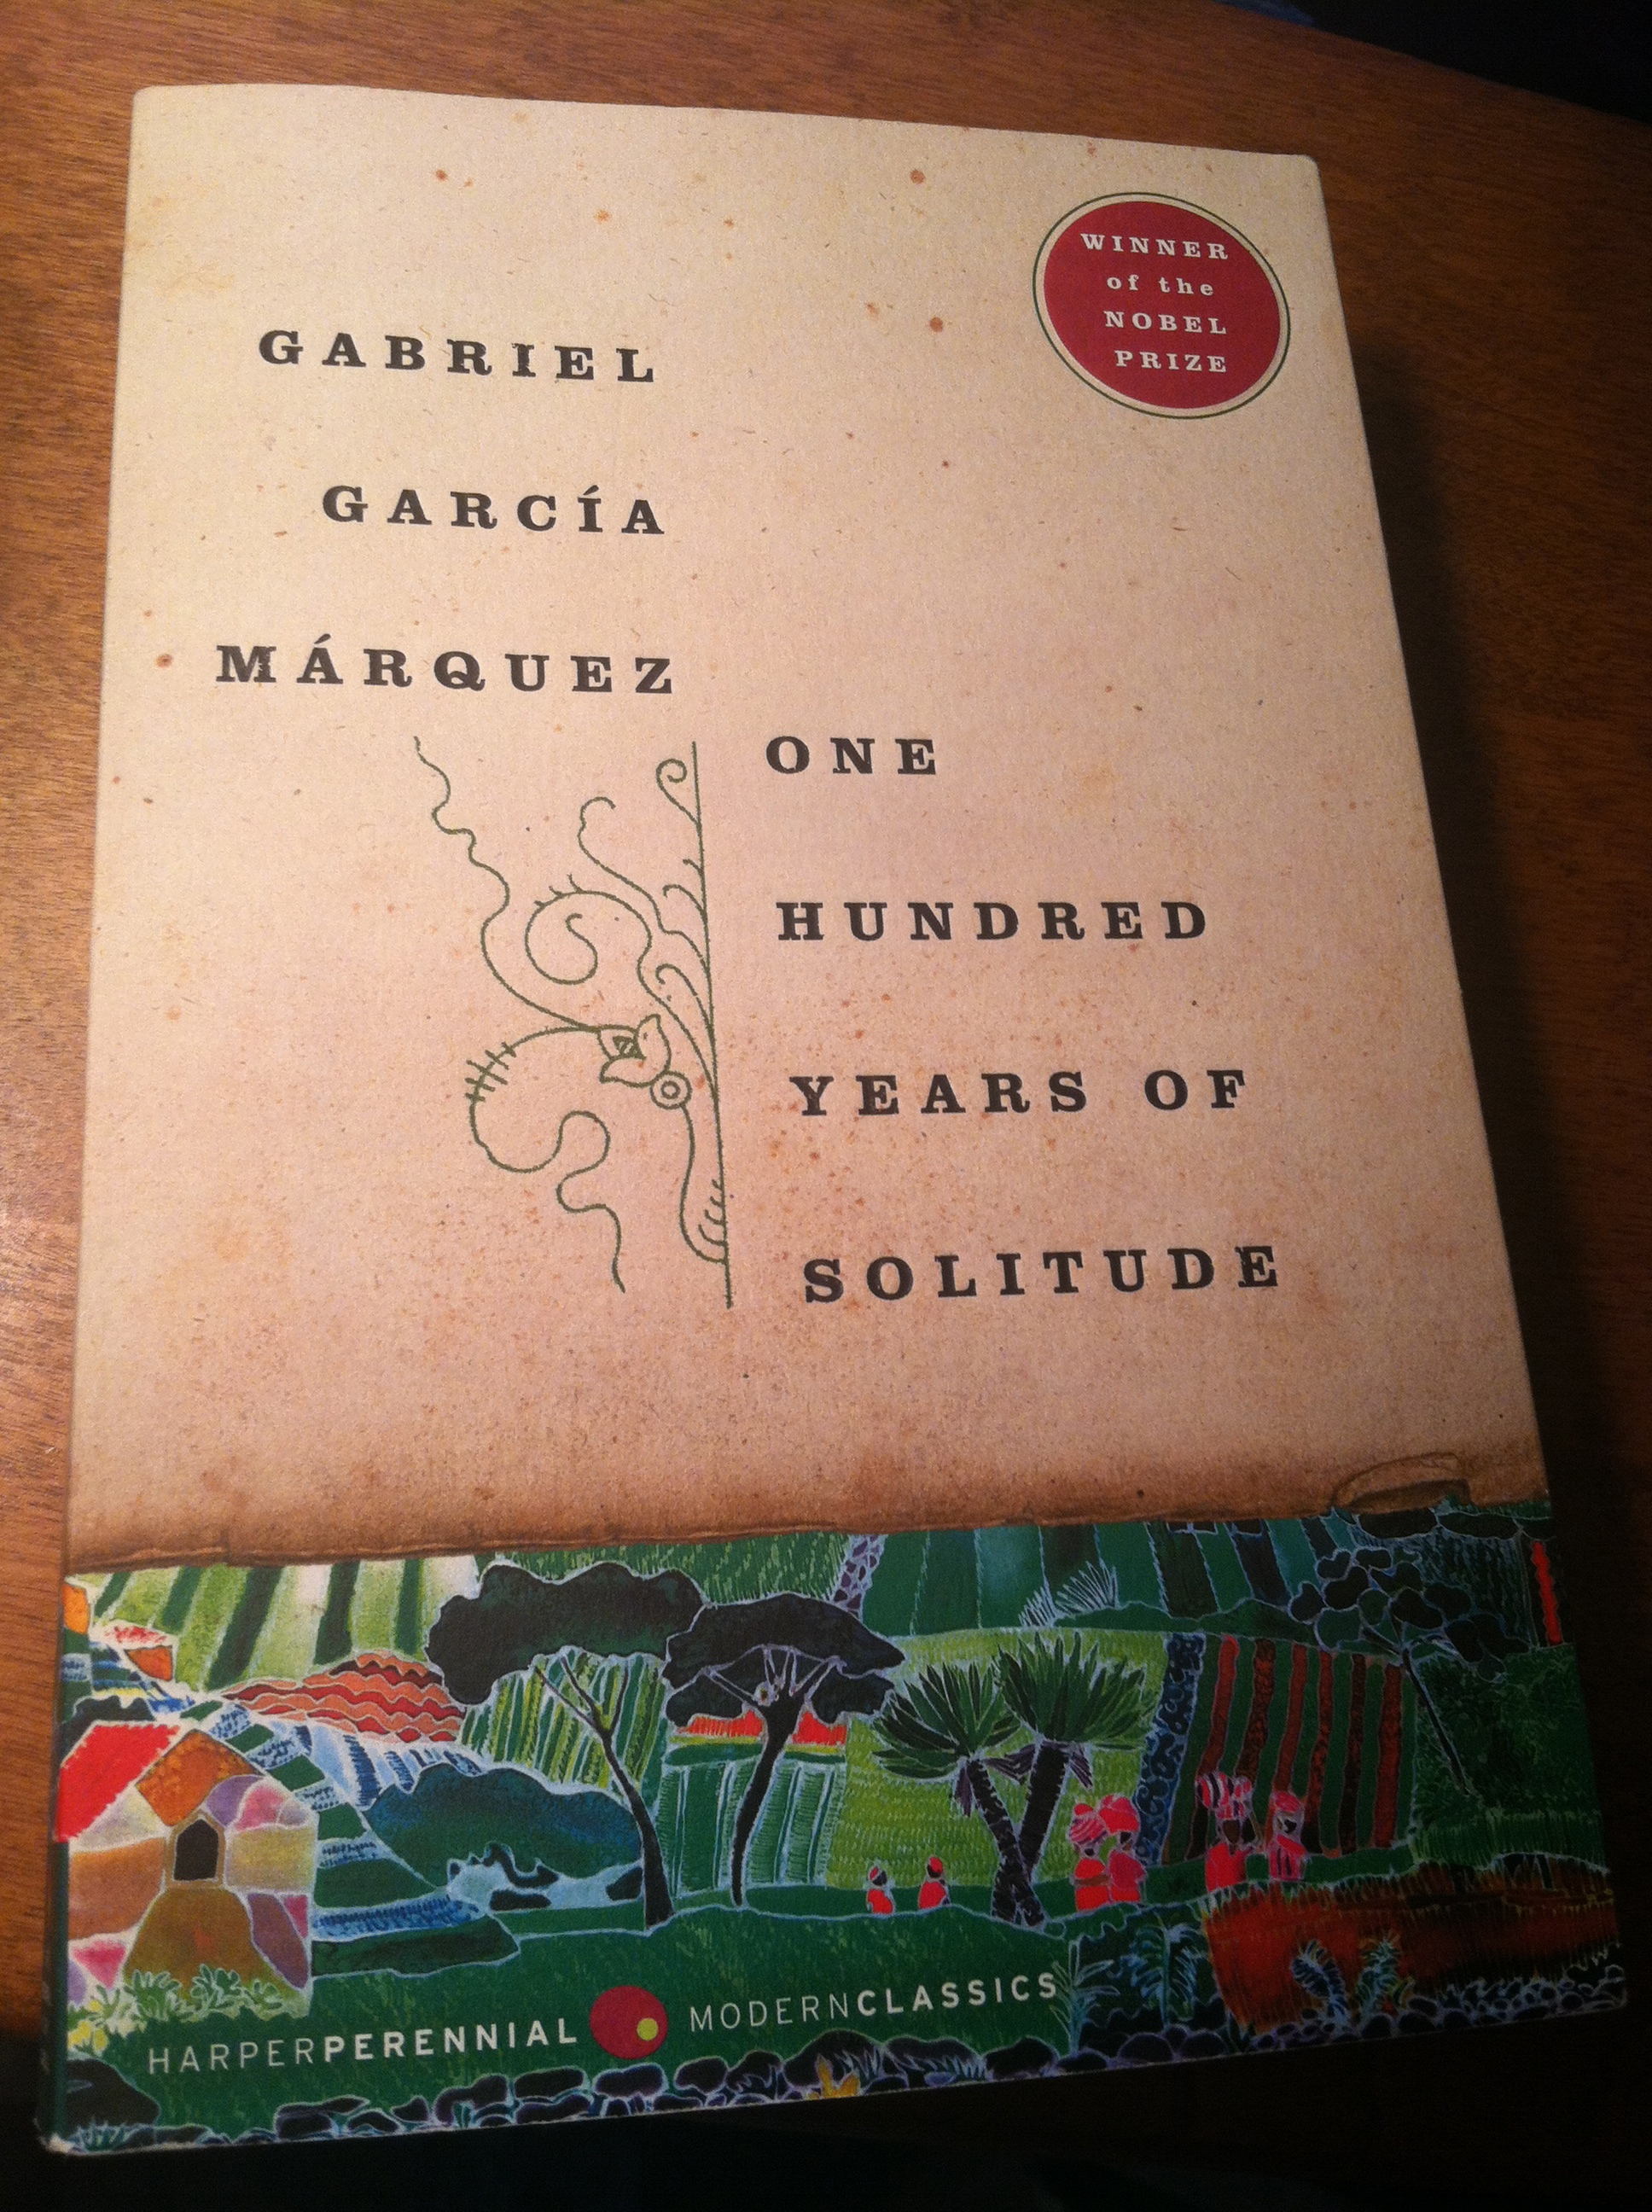 musings on one hundred years of solitude aiguille gabriel garciacutea maacuterquez s novel one hundred years of solitude